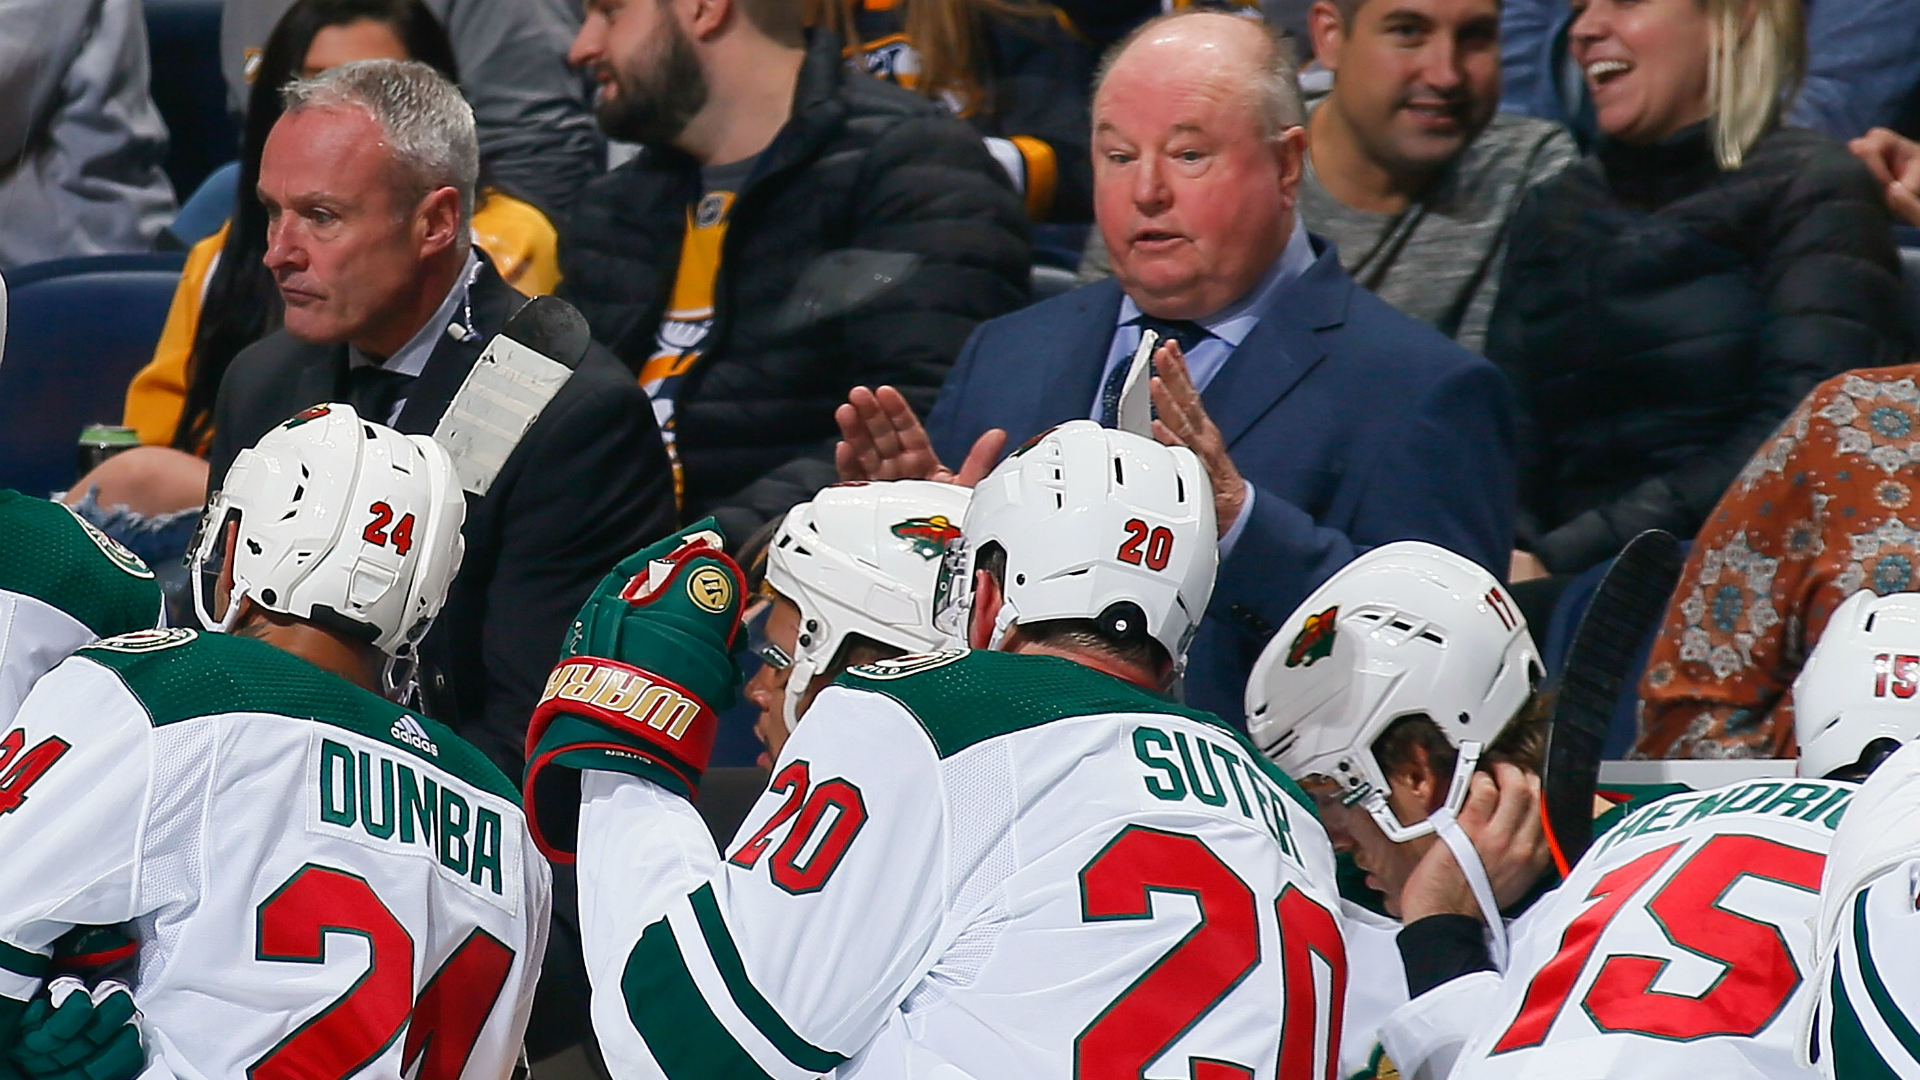 Who's the best fit for Wild? Hextall, Chiarelli, Waddell leading GM candidates